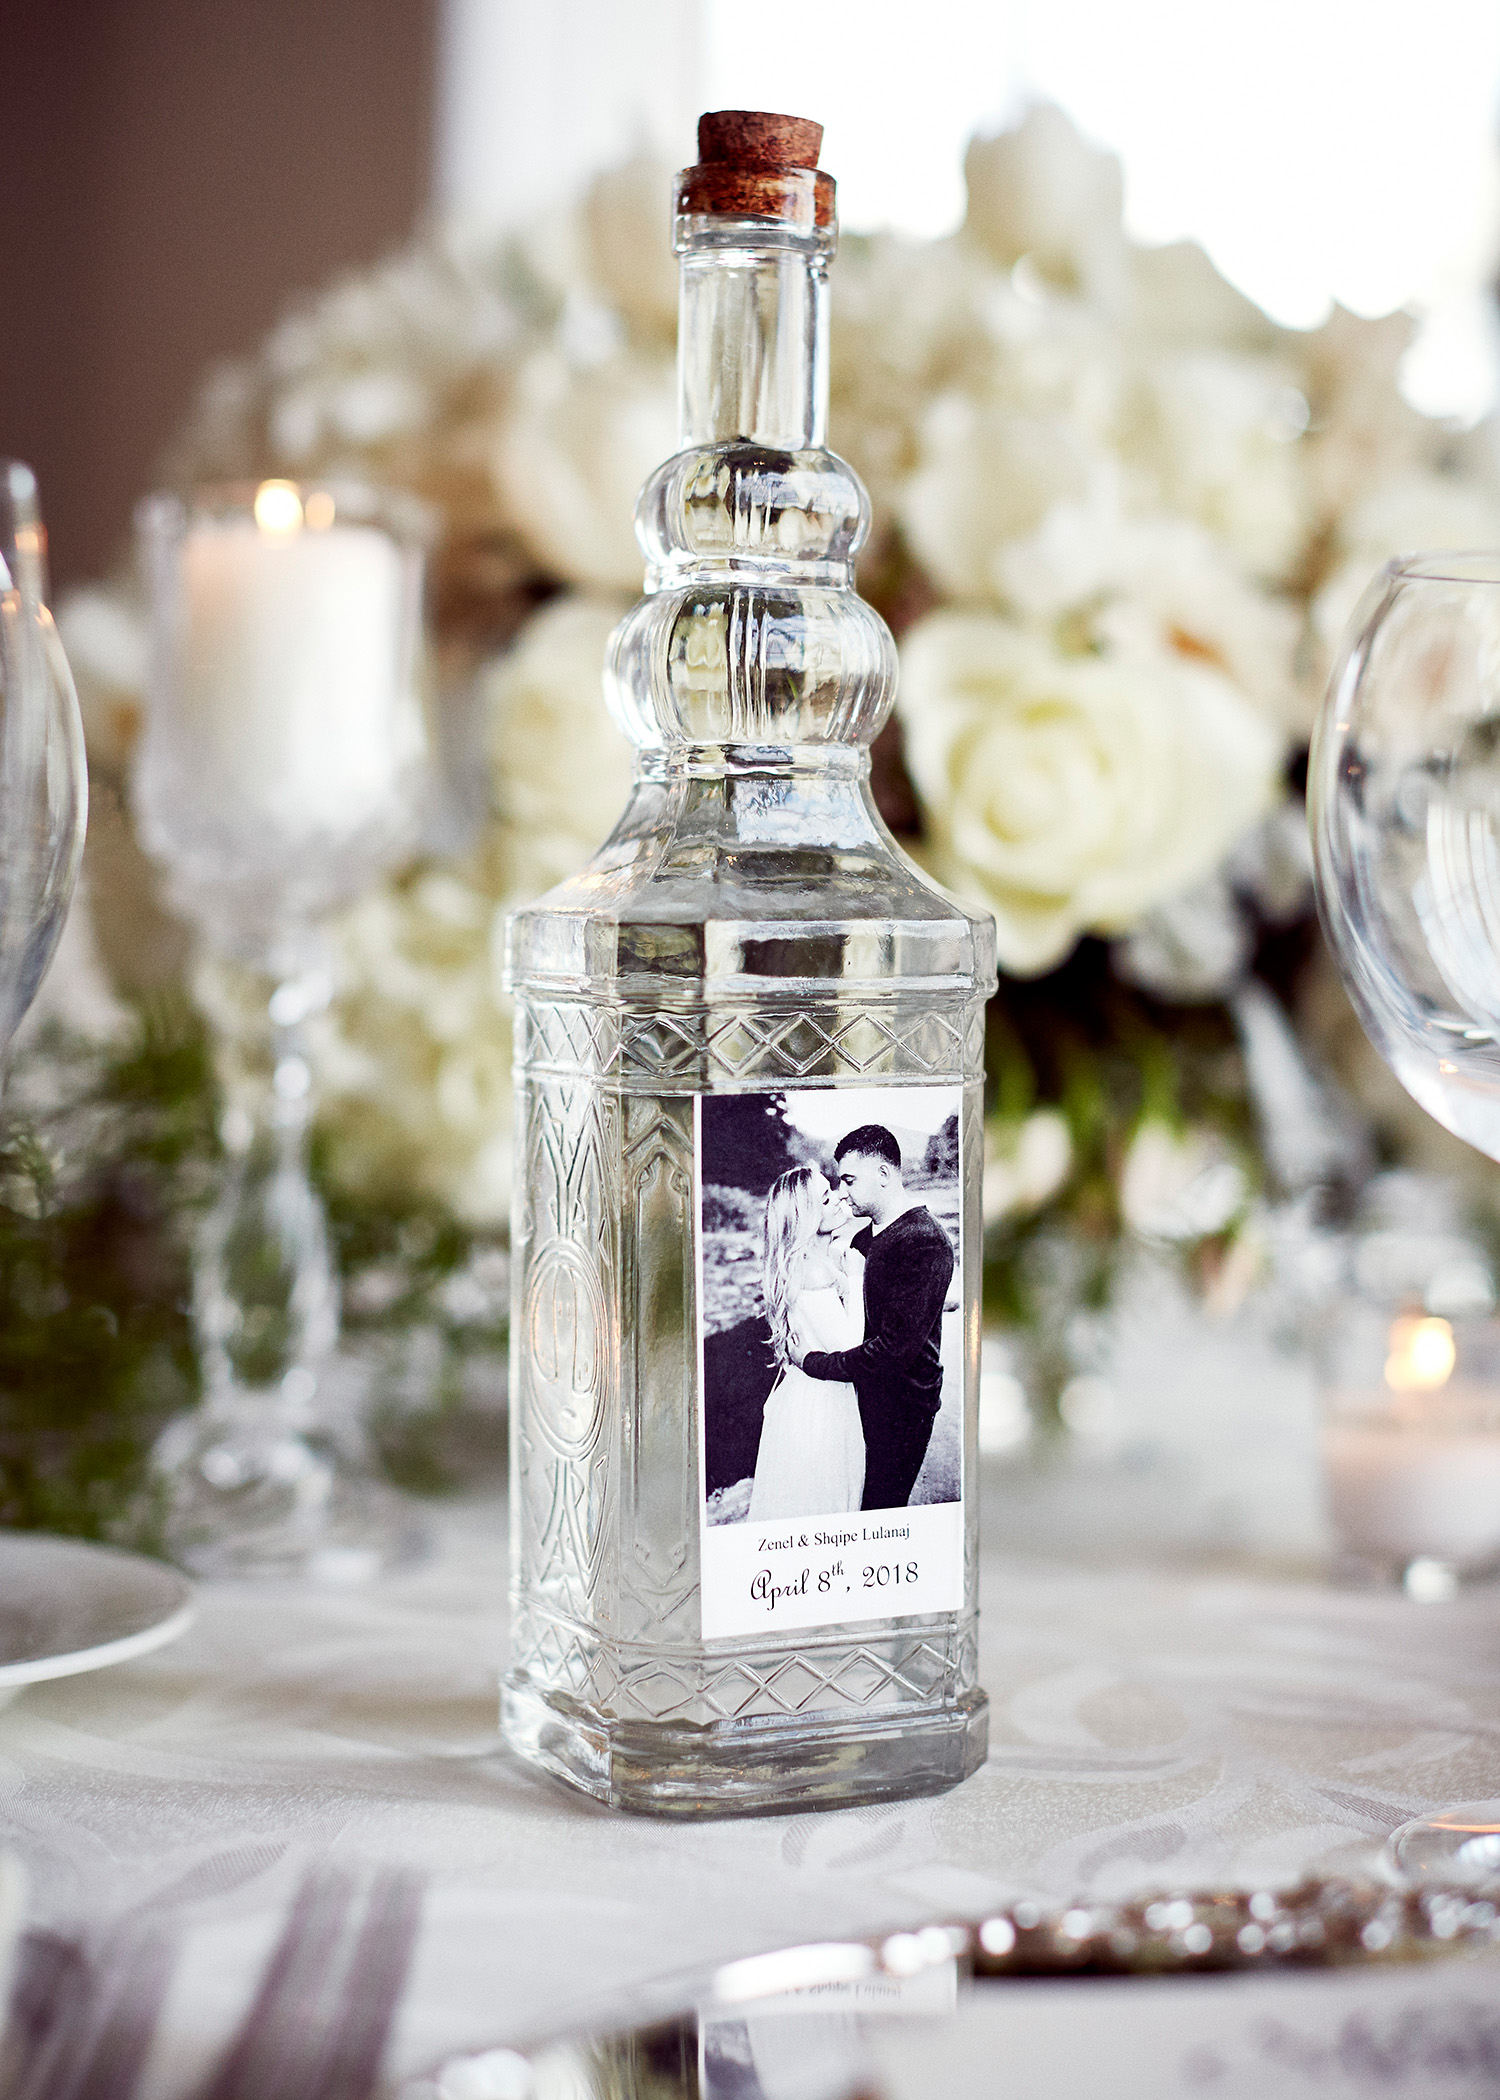 shqipe zenel wedding vodka bottle on table with flowers